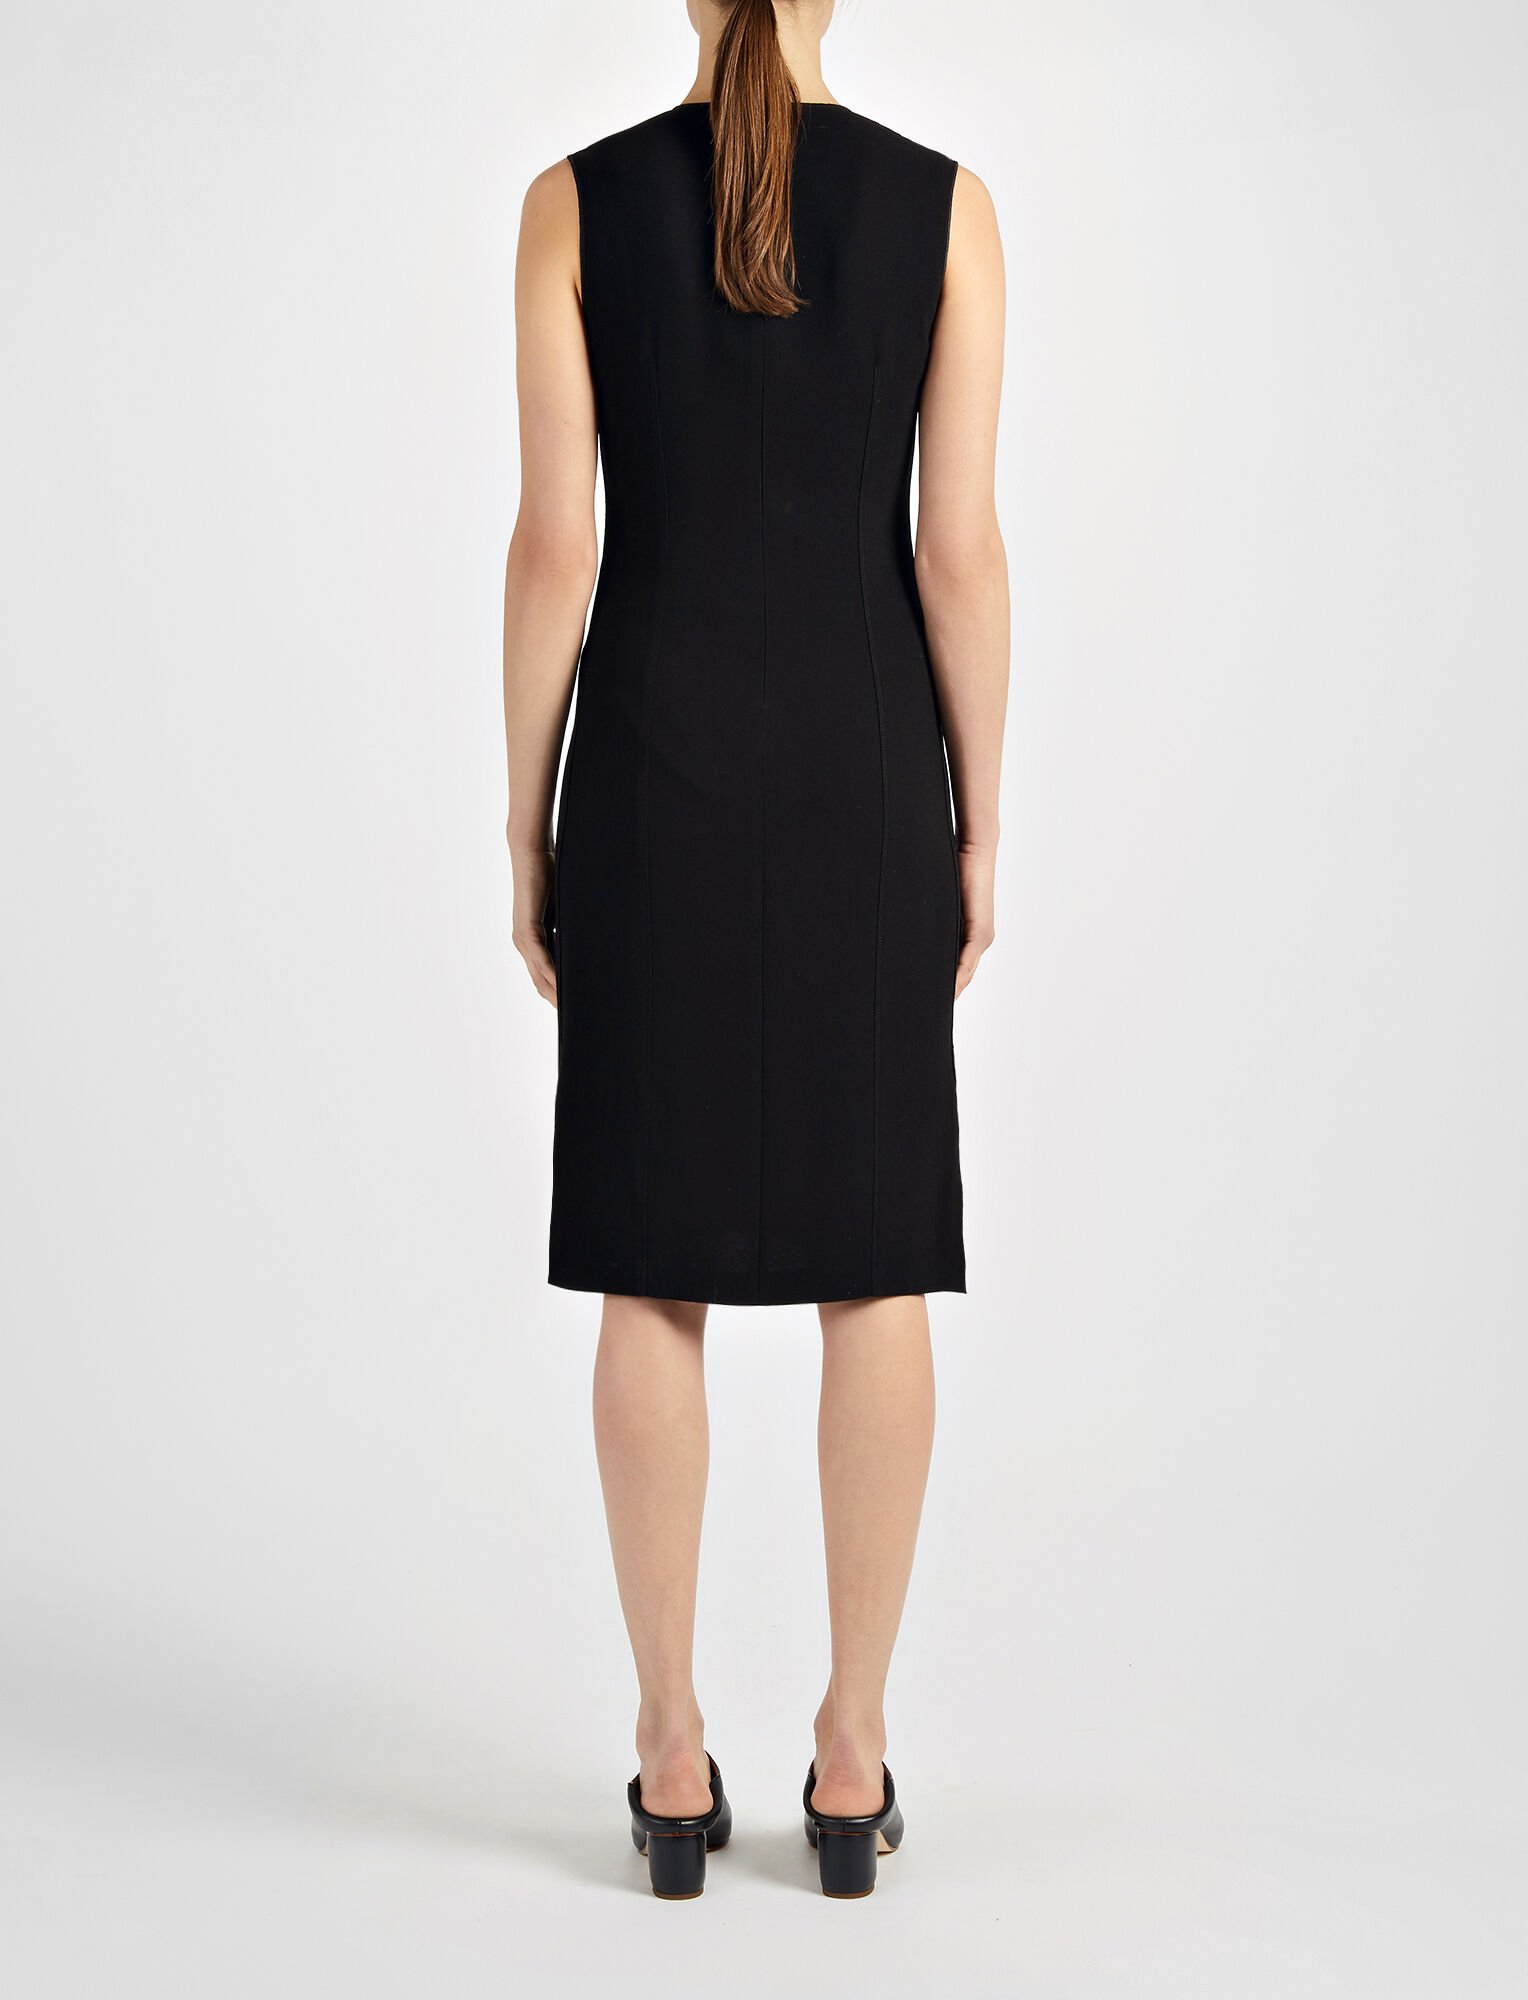 Joseph, Crepe Stretch Sadie Dress, in BLACK